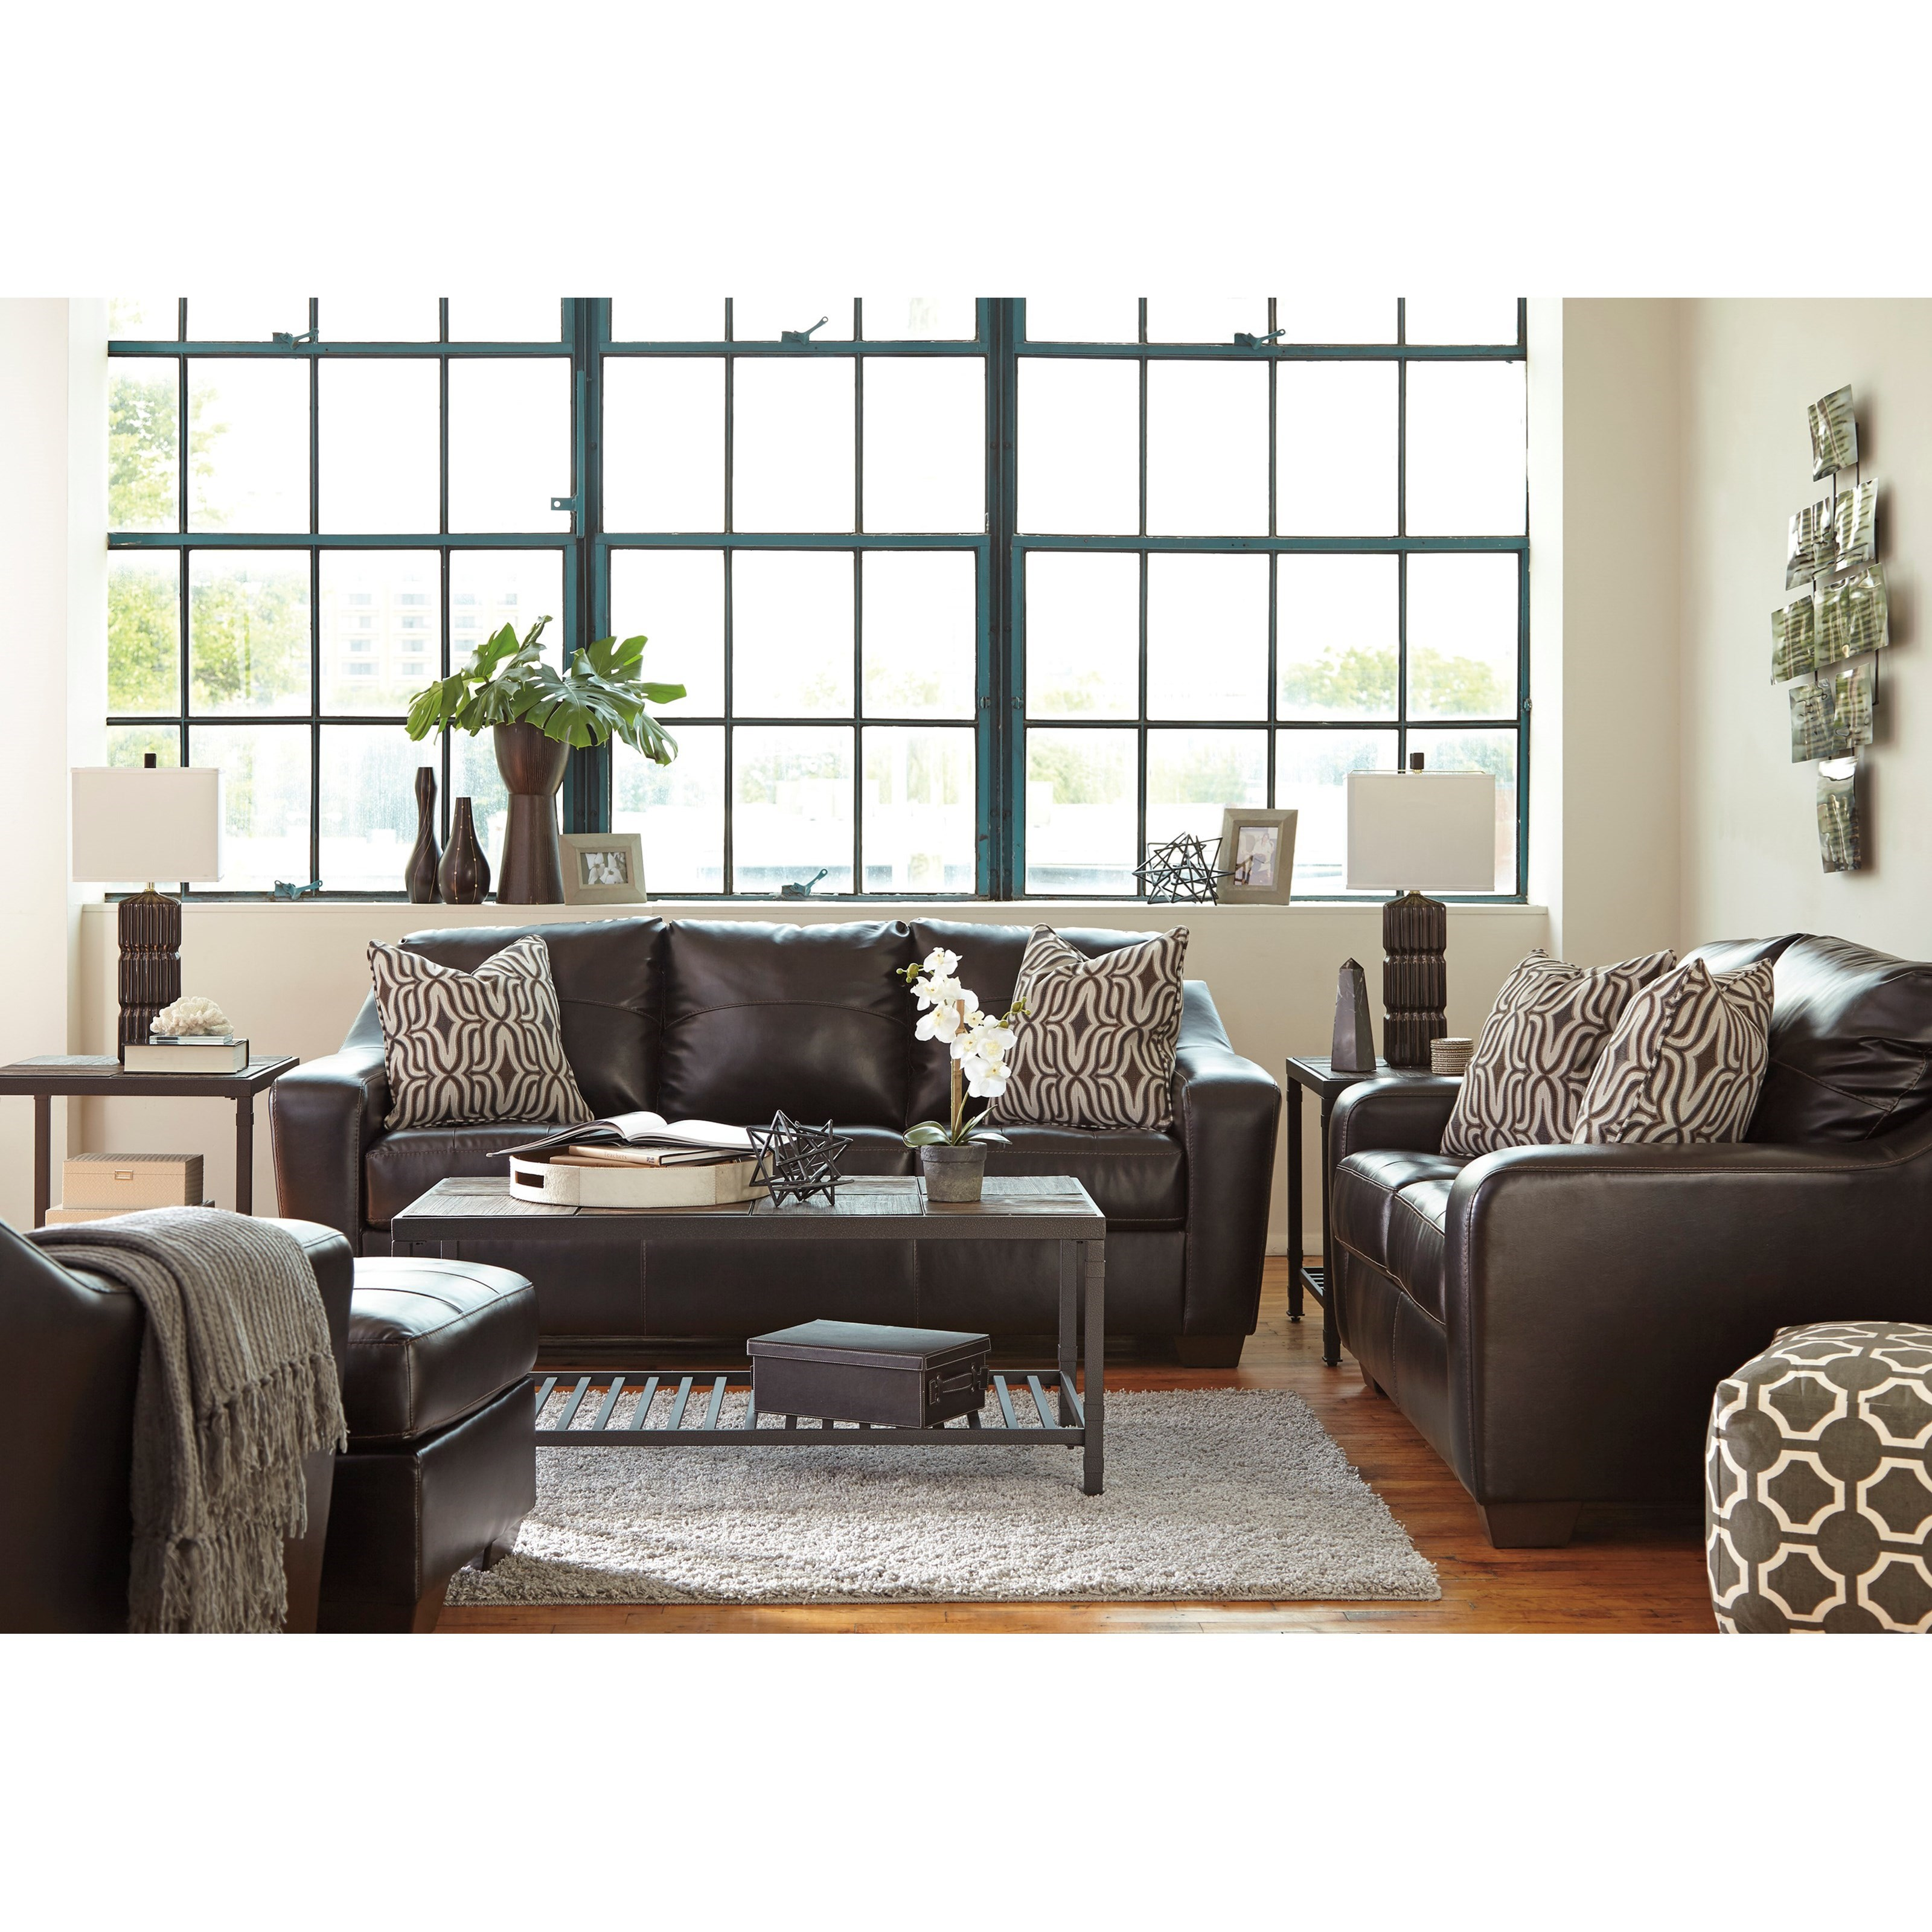 Benchcraft Coppell DuraBlend® Stationary Living Room Group - Item Number: 59001 Living Room Group 2